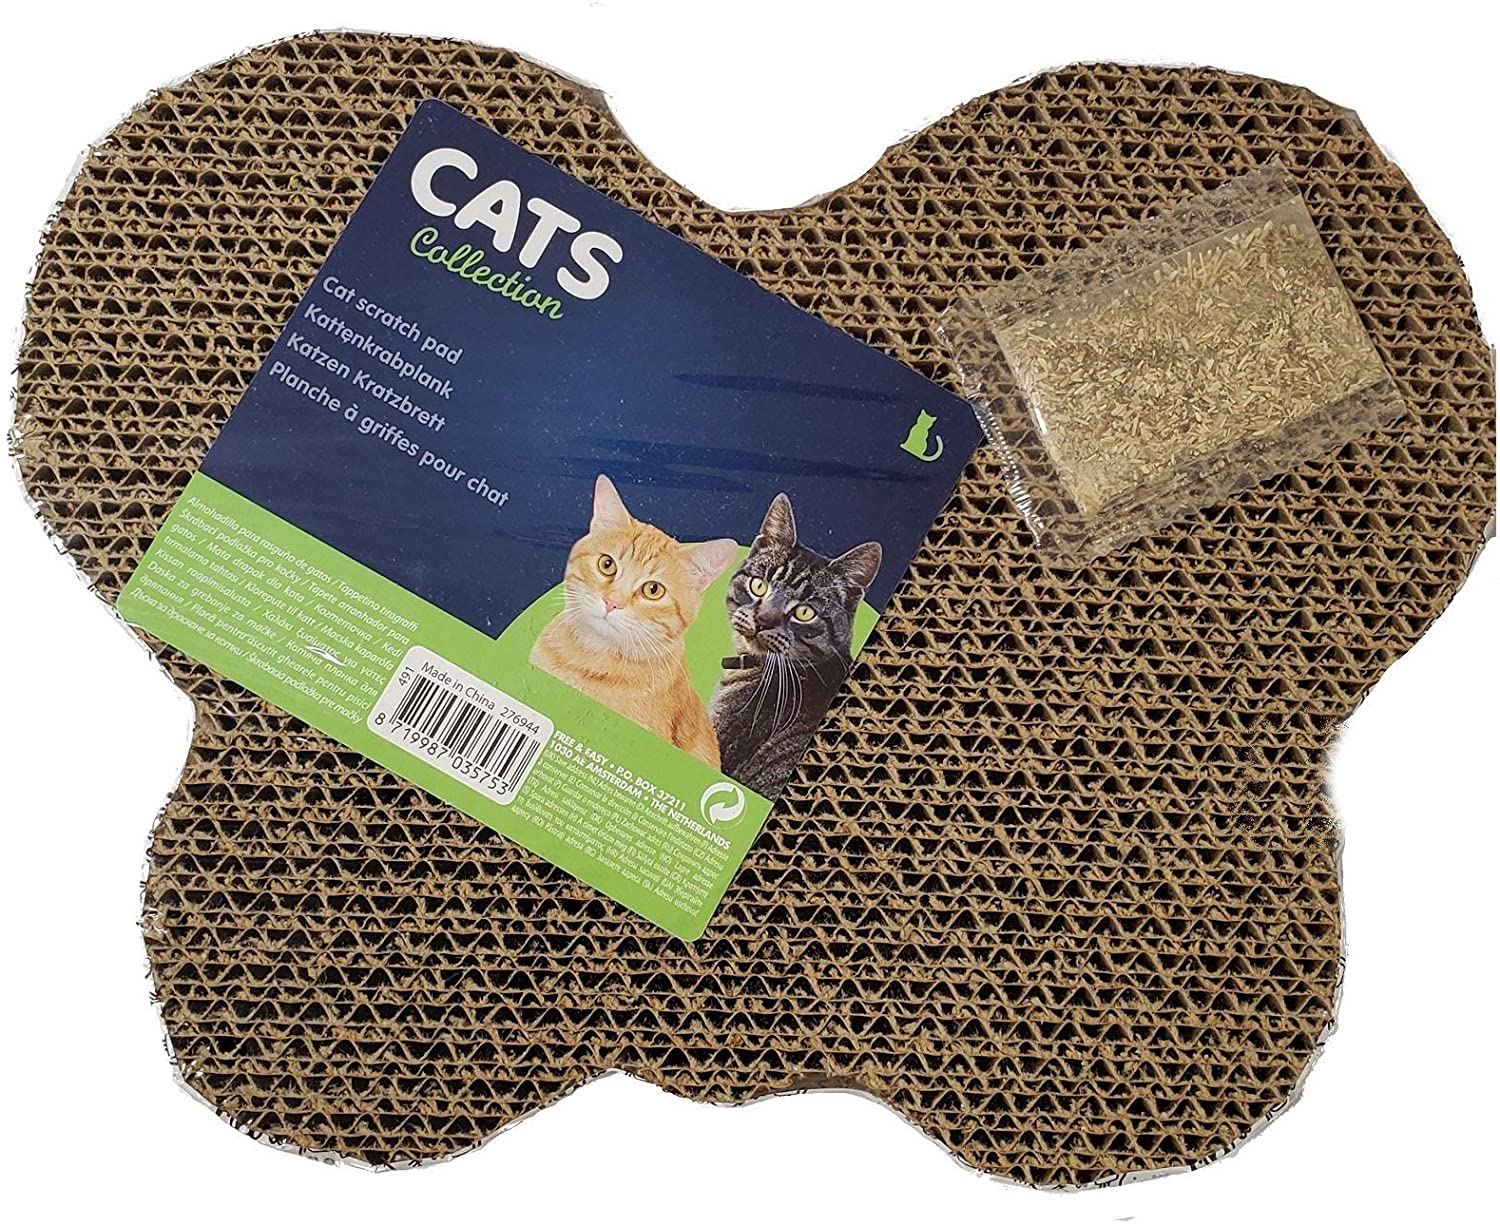 Home and Holiday Shops Butterfly Corrugated Cardboard Scratch Pad Cat Scratching Toy New